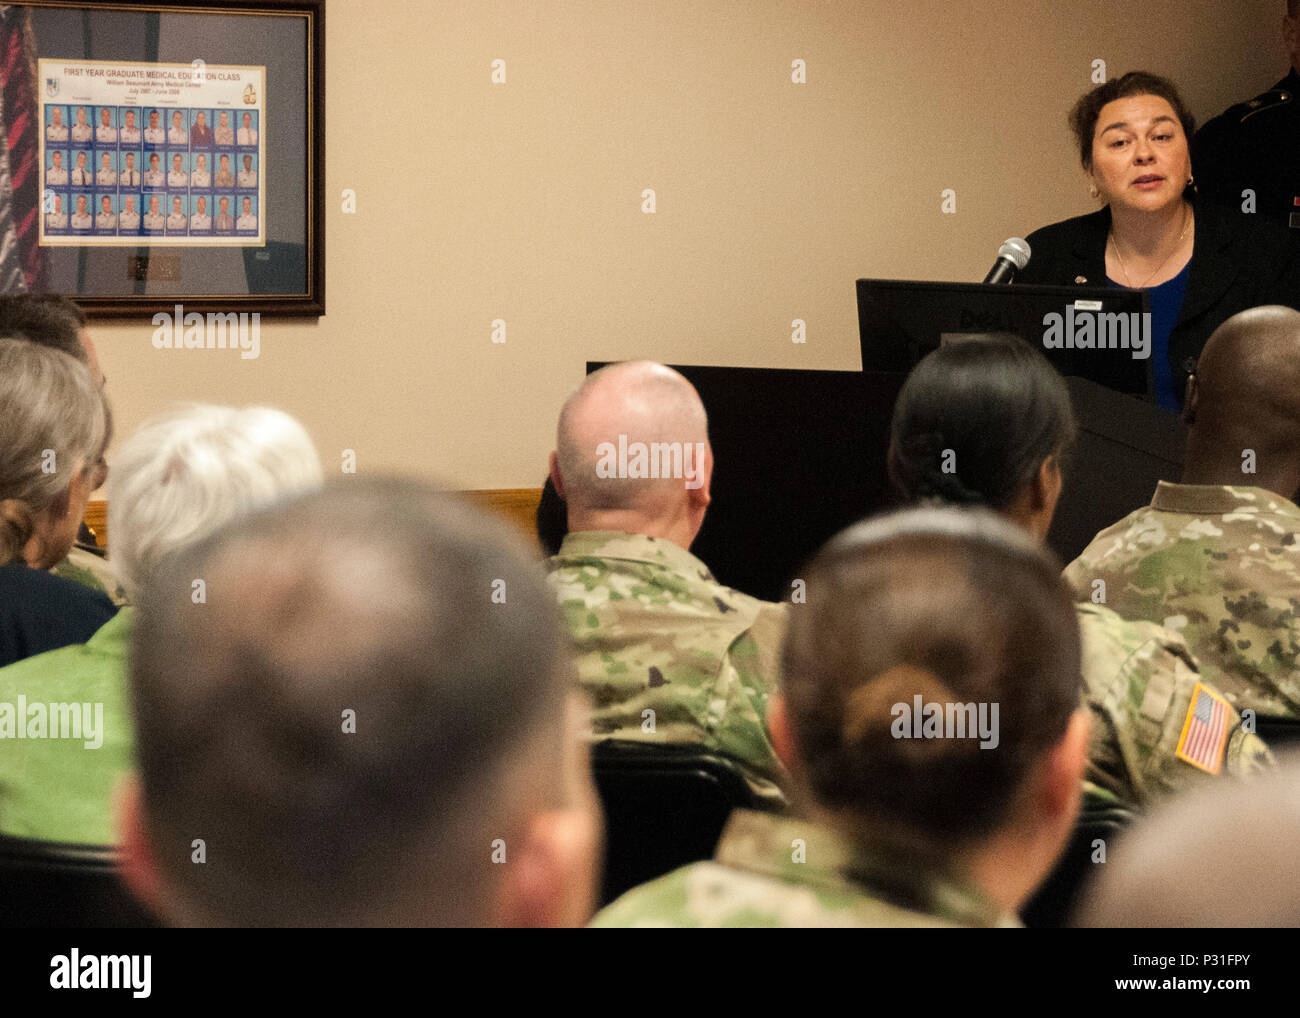 Dr. Guillermina Núñez-Mchiri, associate professor of Anthropology and interim director of Women and Gender Studies, The University of Texas at El Paso, speaks to Soldiers and civilians at William Beaumont Army Medical Center during the annual Women's Equality Day Observance at WBAMC, Aug. 18. - Stock Image